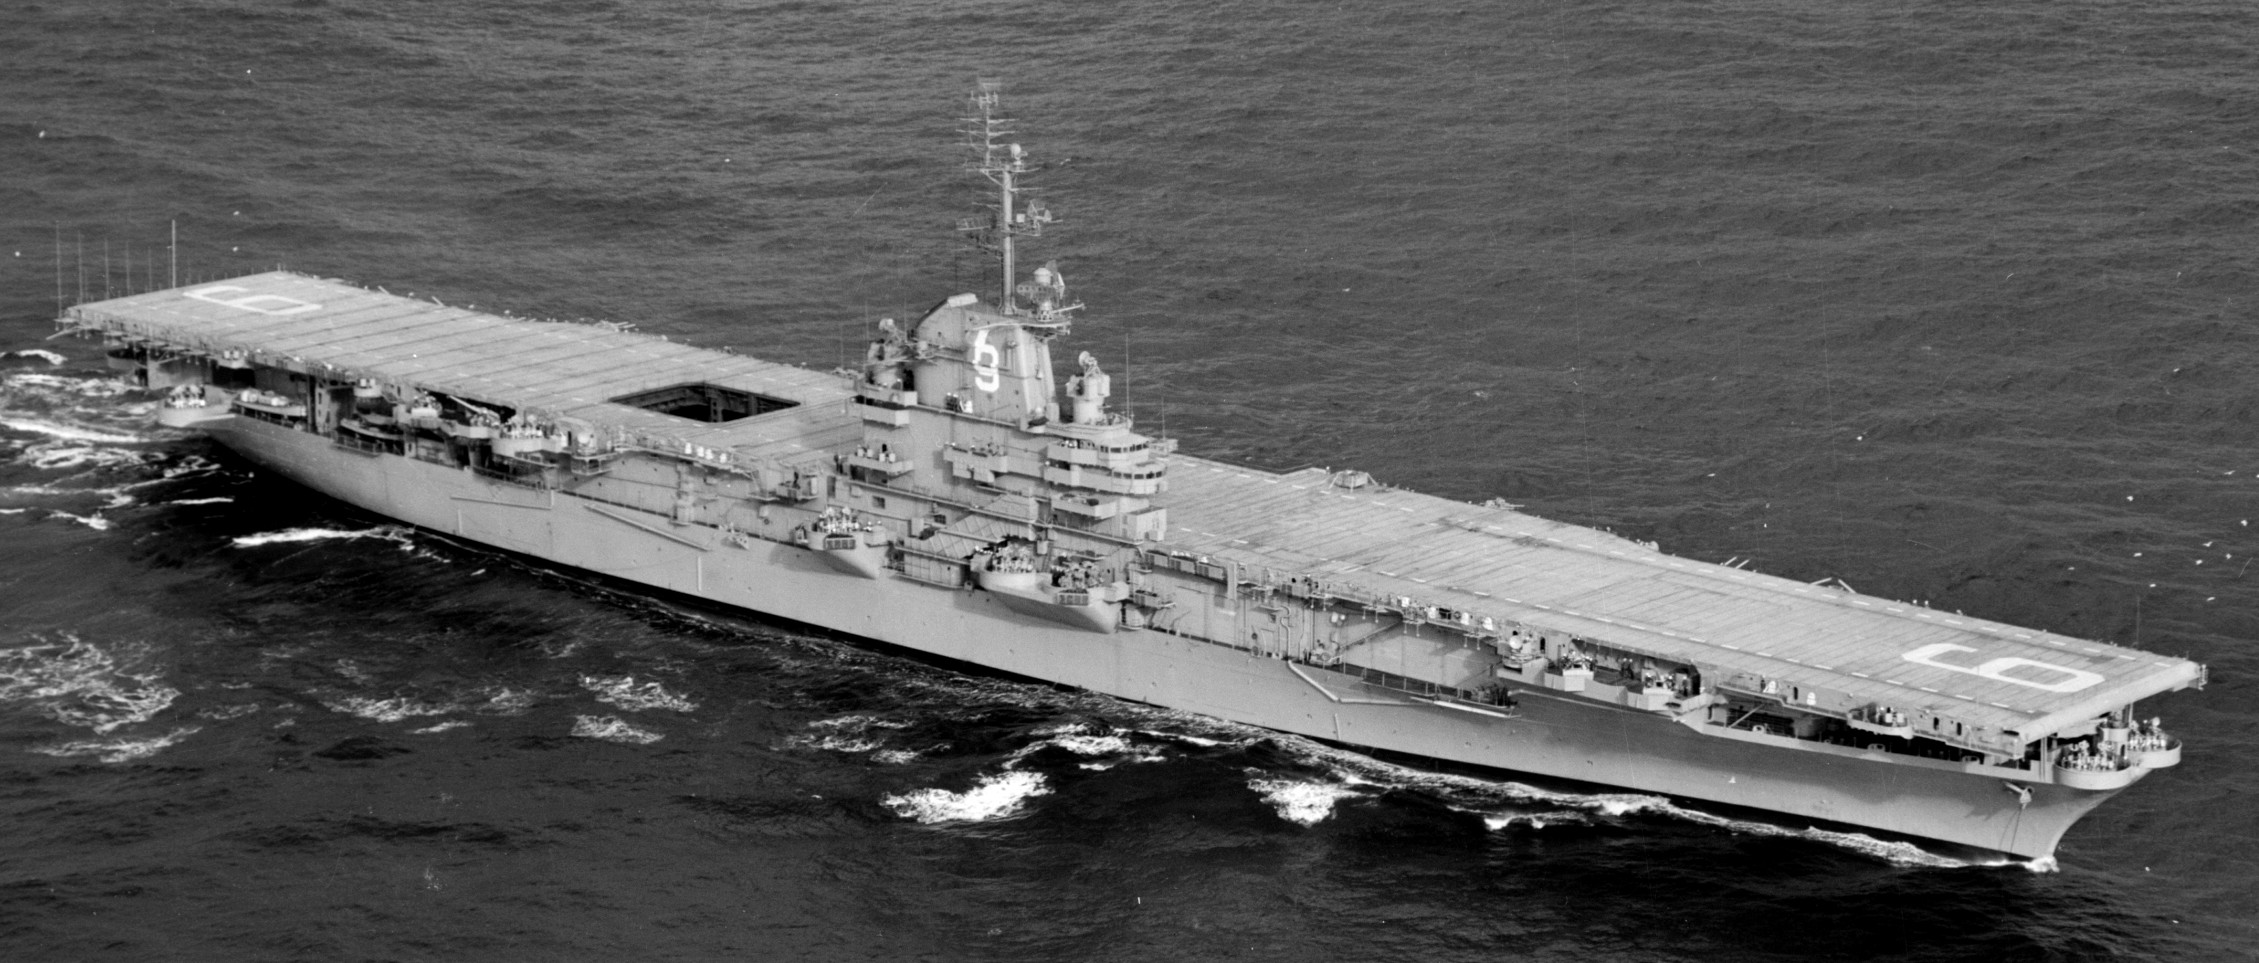 essex class aircraft carrier cva cvs us navy